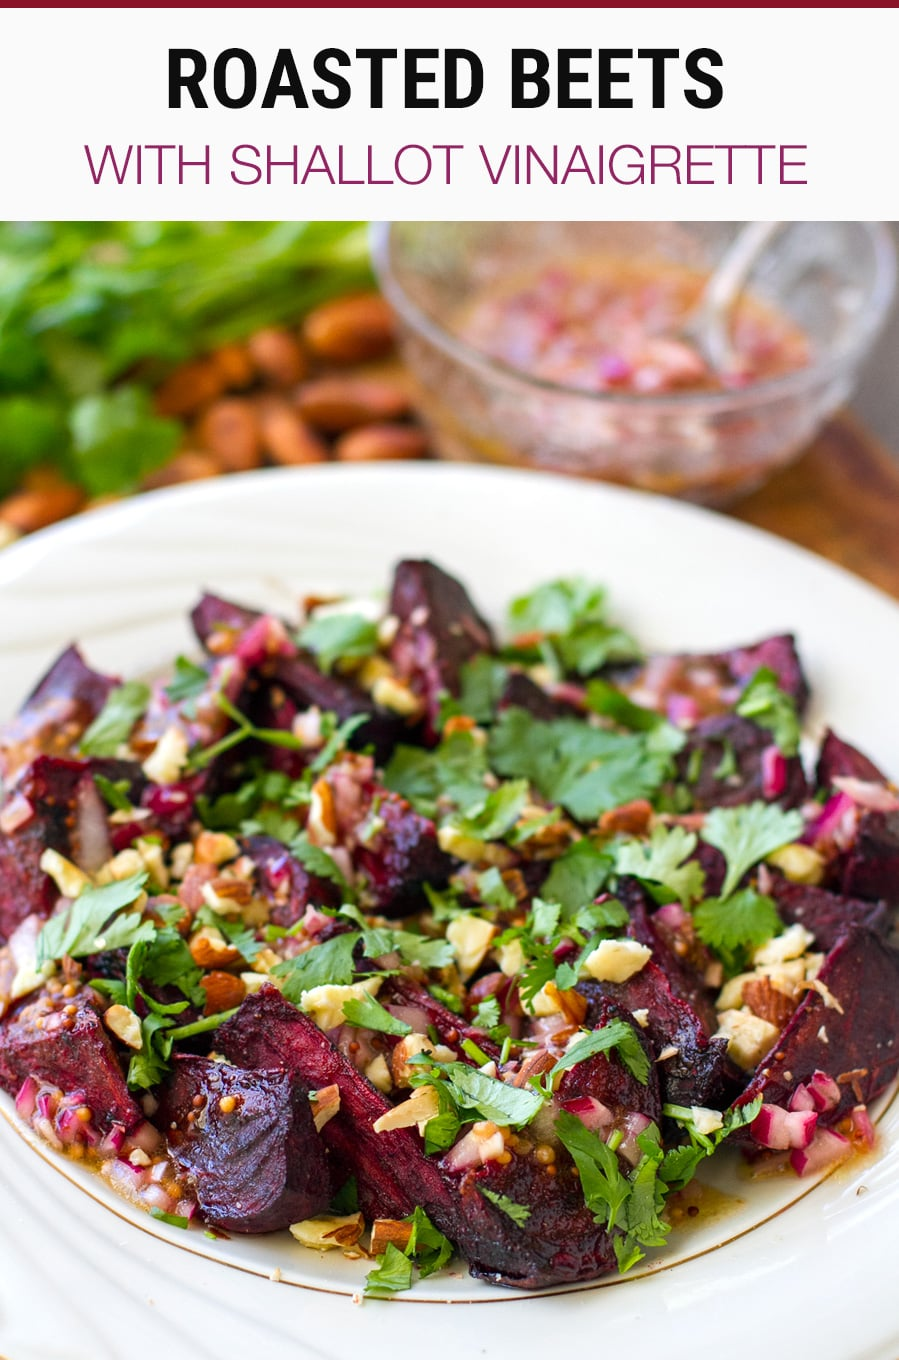 Roasted Beets With Red Wine, Shallot & Mustard Vinaigrette | Paleo, Whole30, Vegan Recipe